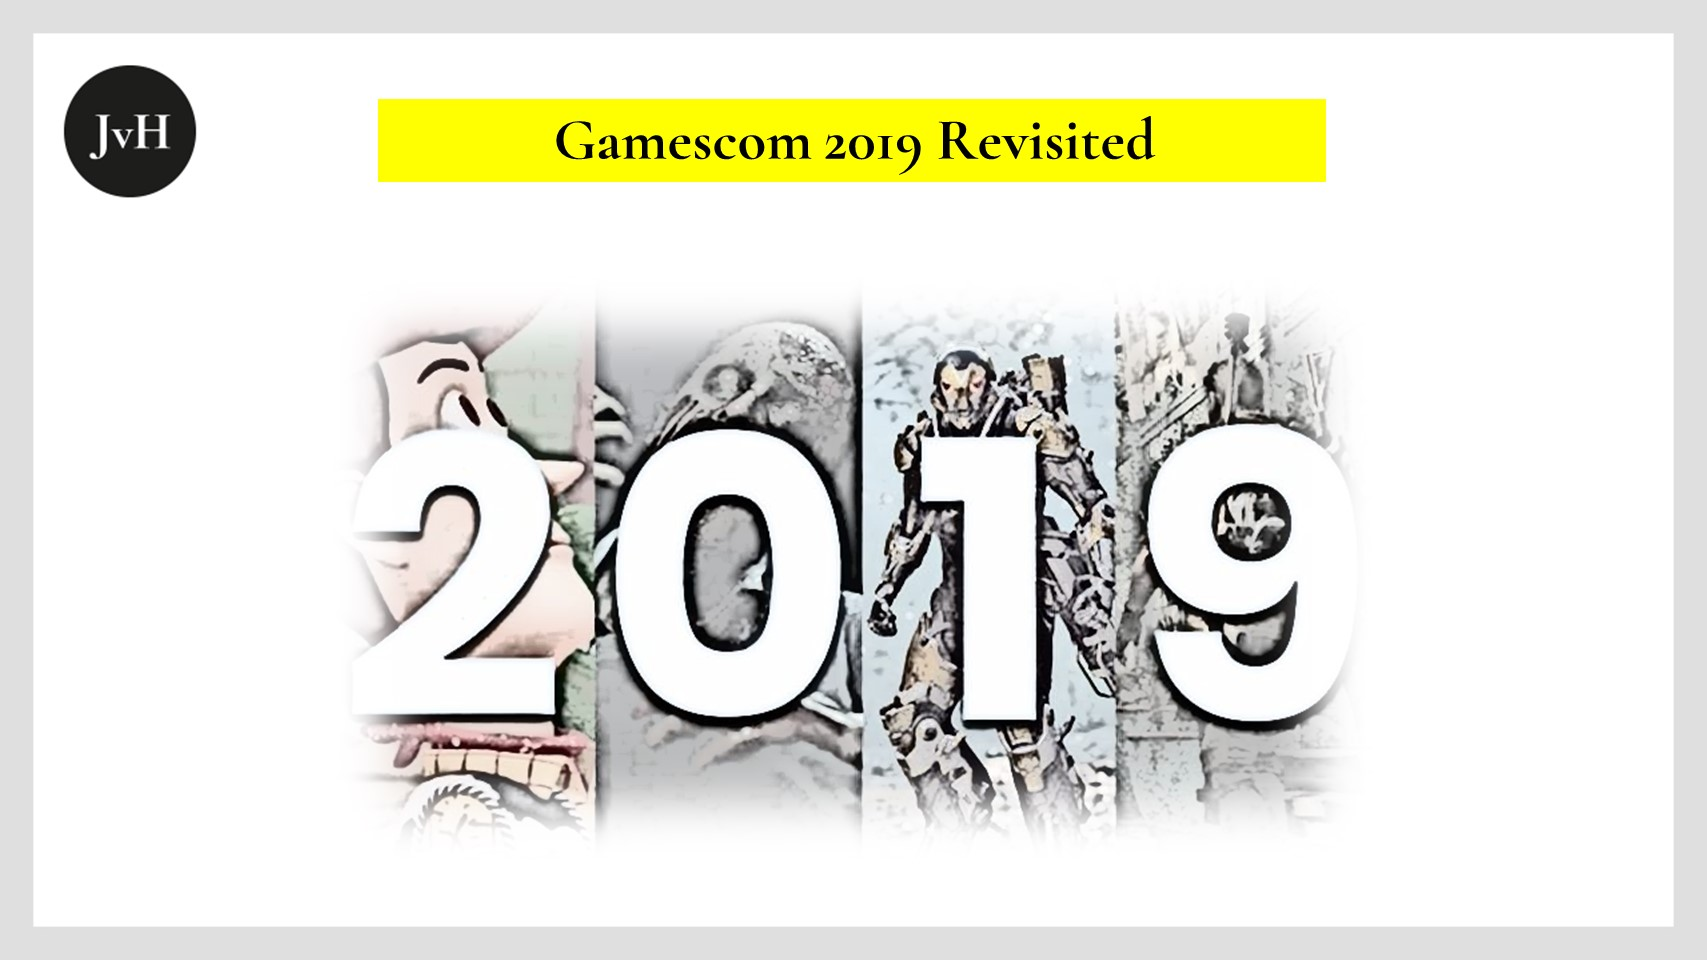 Gamescom-2019-revisited